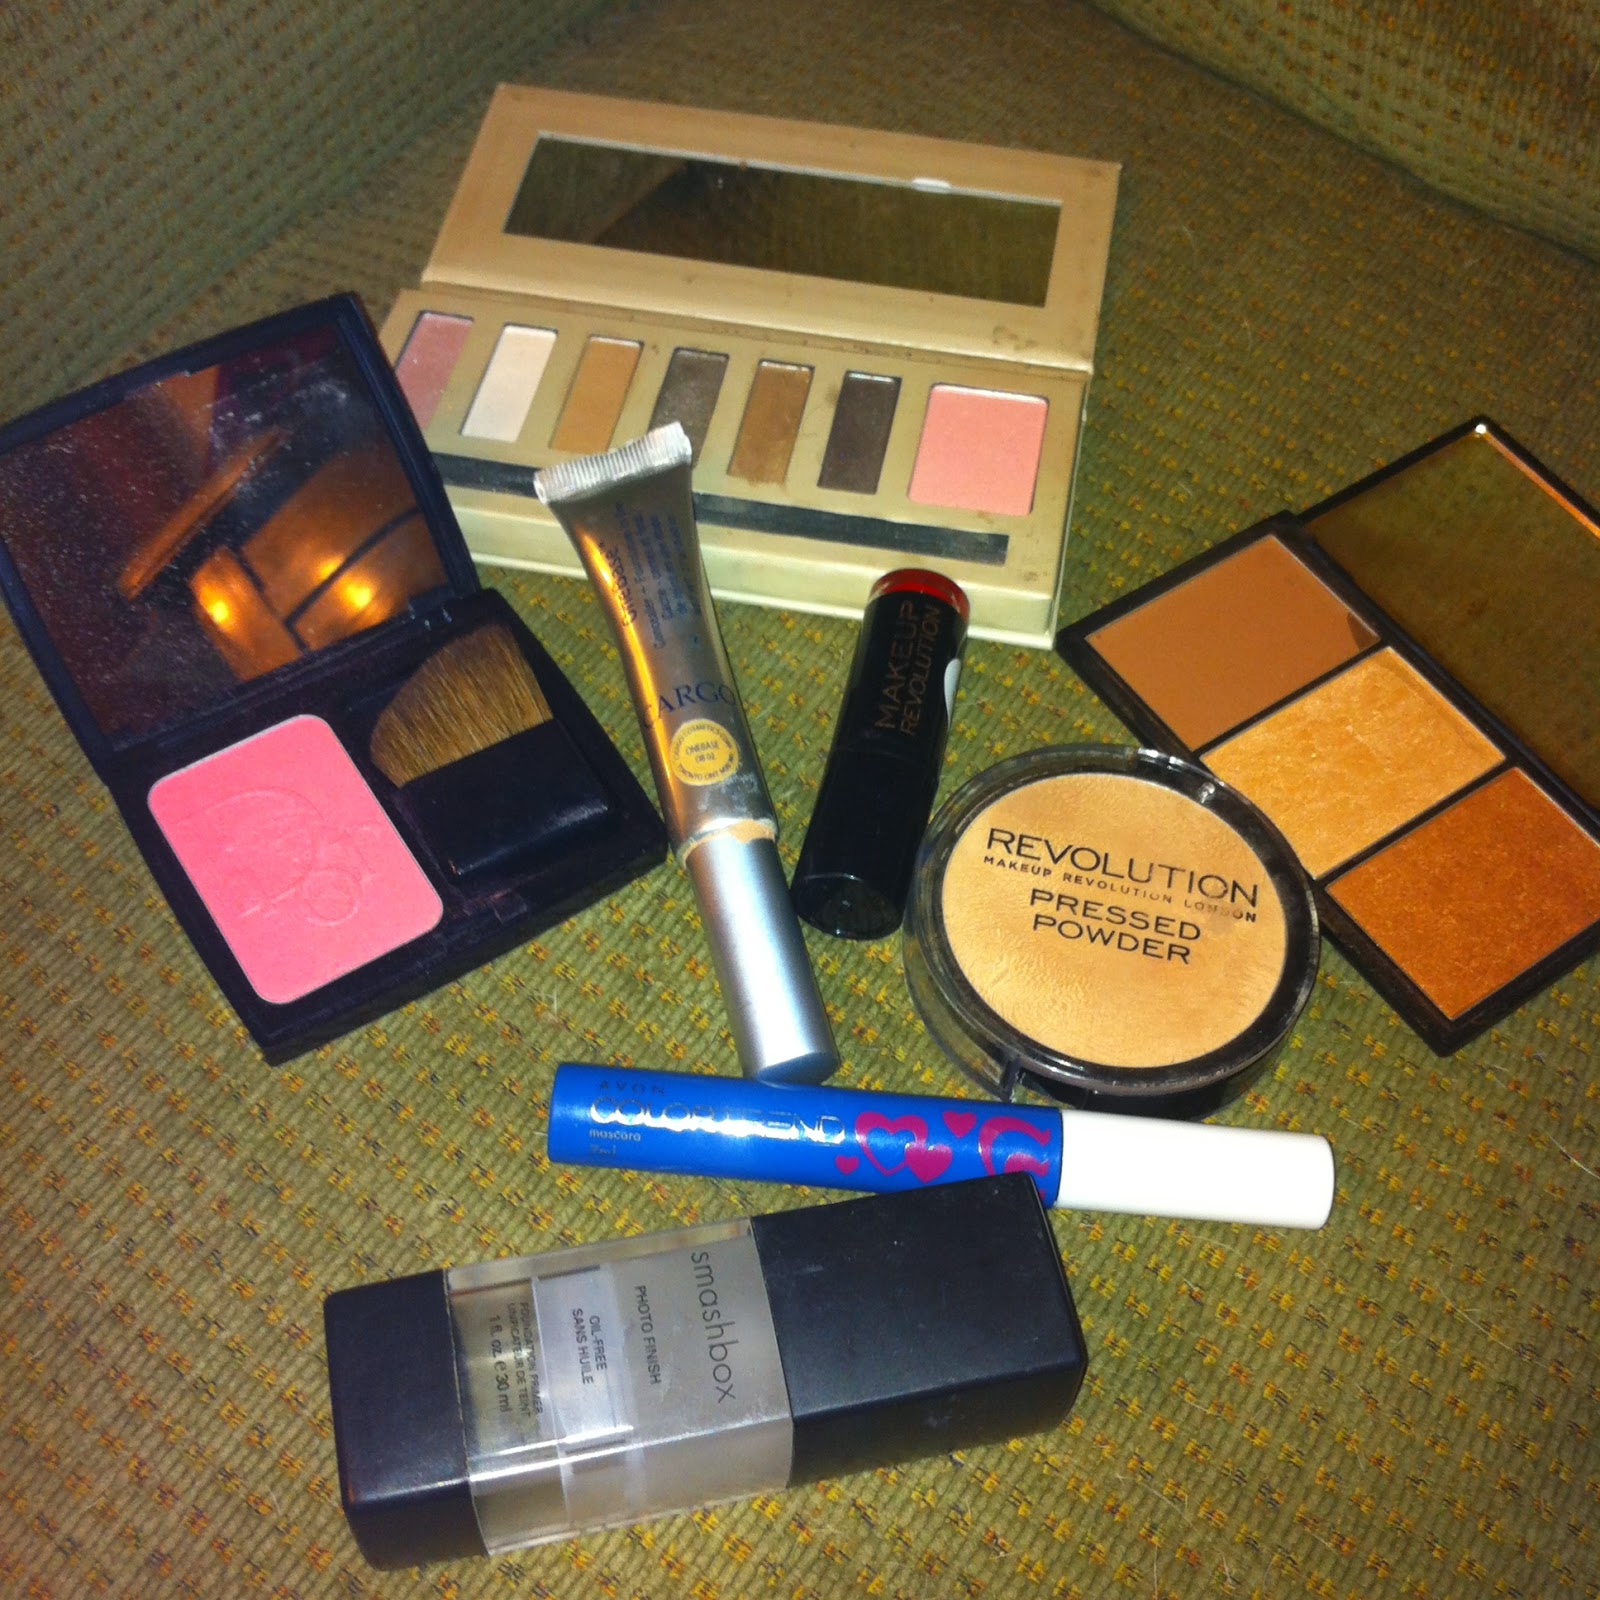 Barry M Eyeshadow, Make Up Revolution Lipstick, Makeup Revolution Pressed Powder, Dior Blush, Smashbox Primer